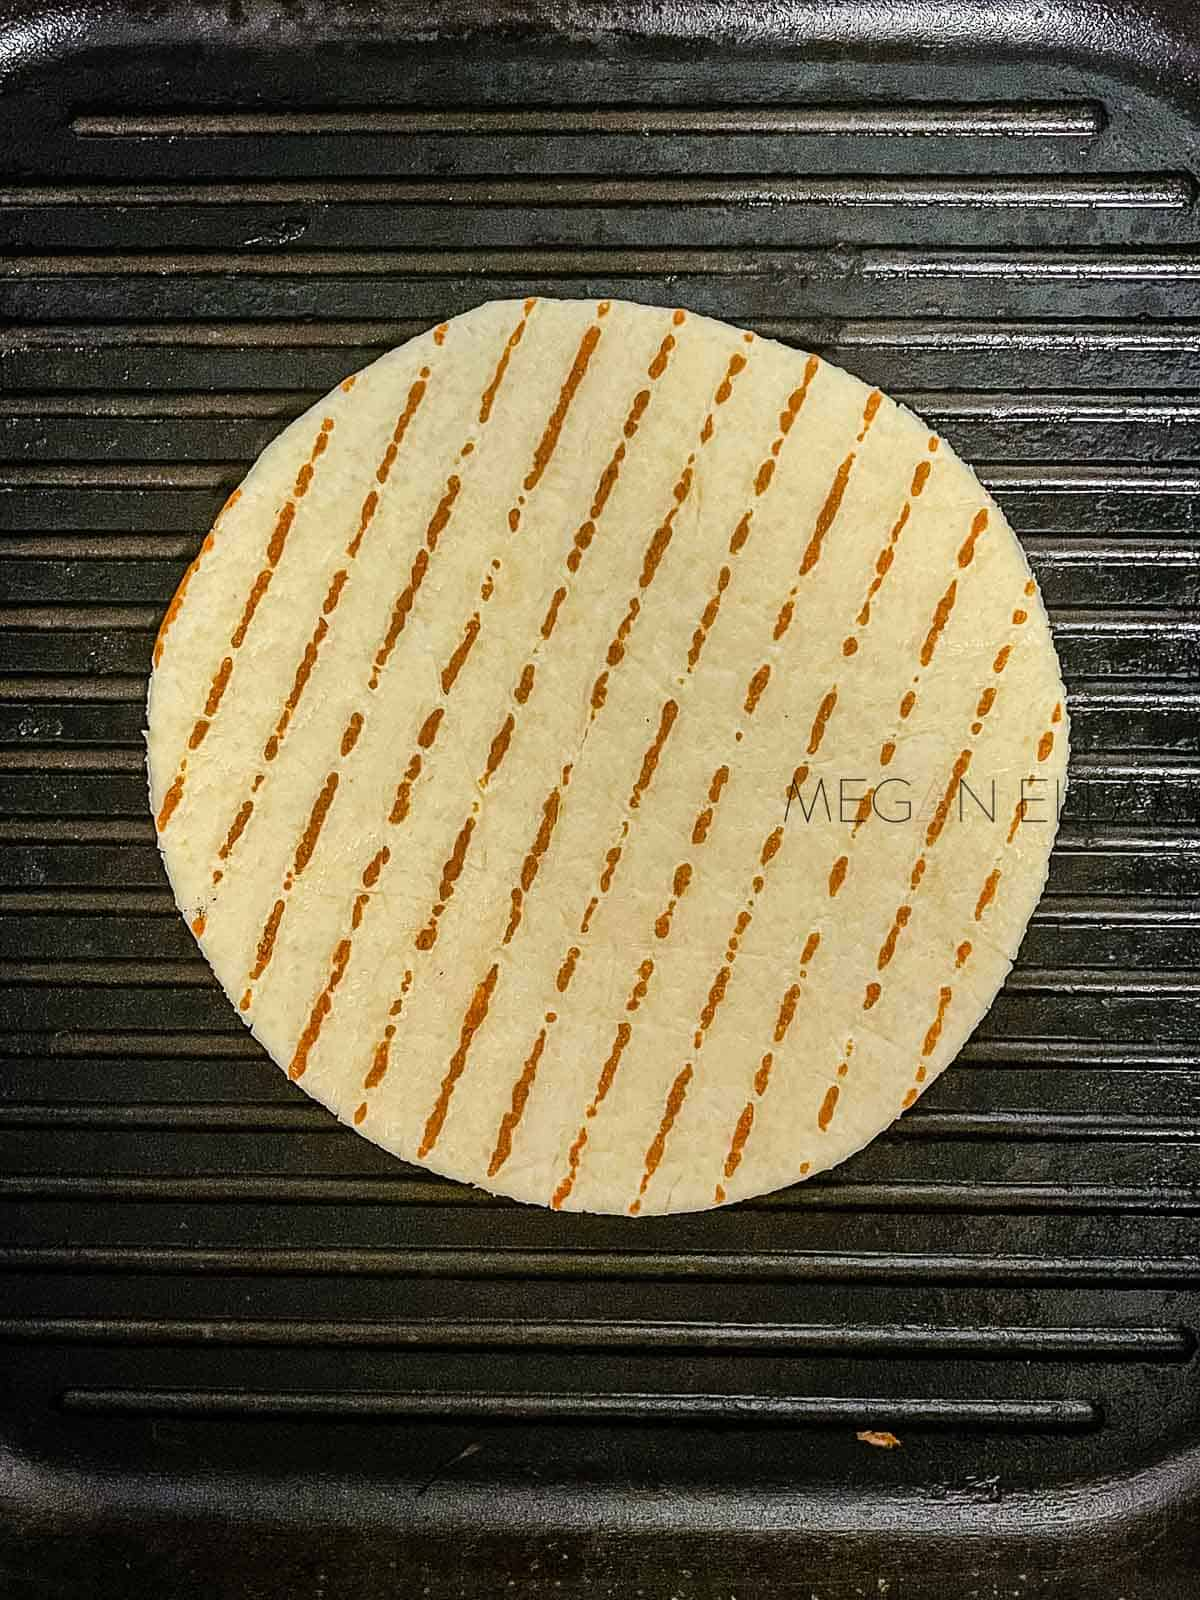 A wrap on a griddle plate.